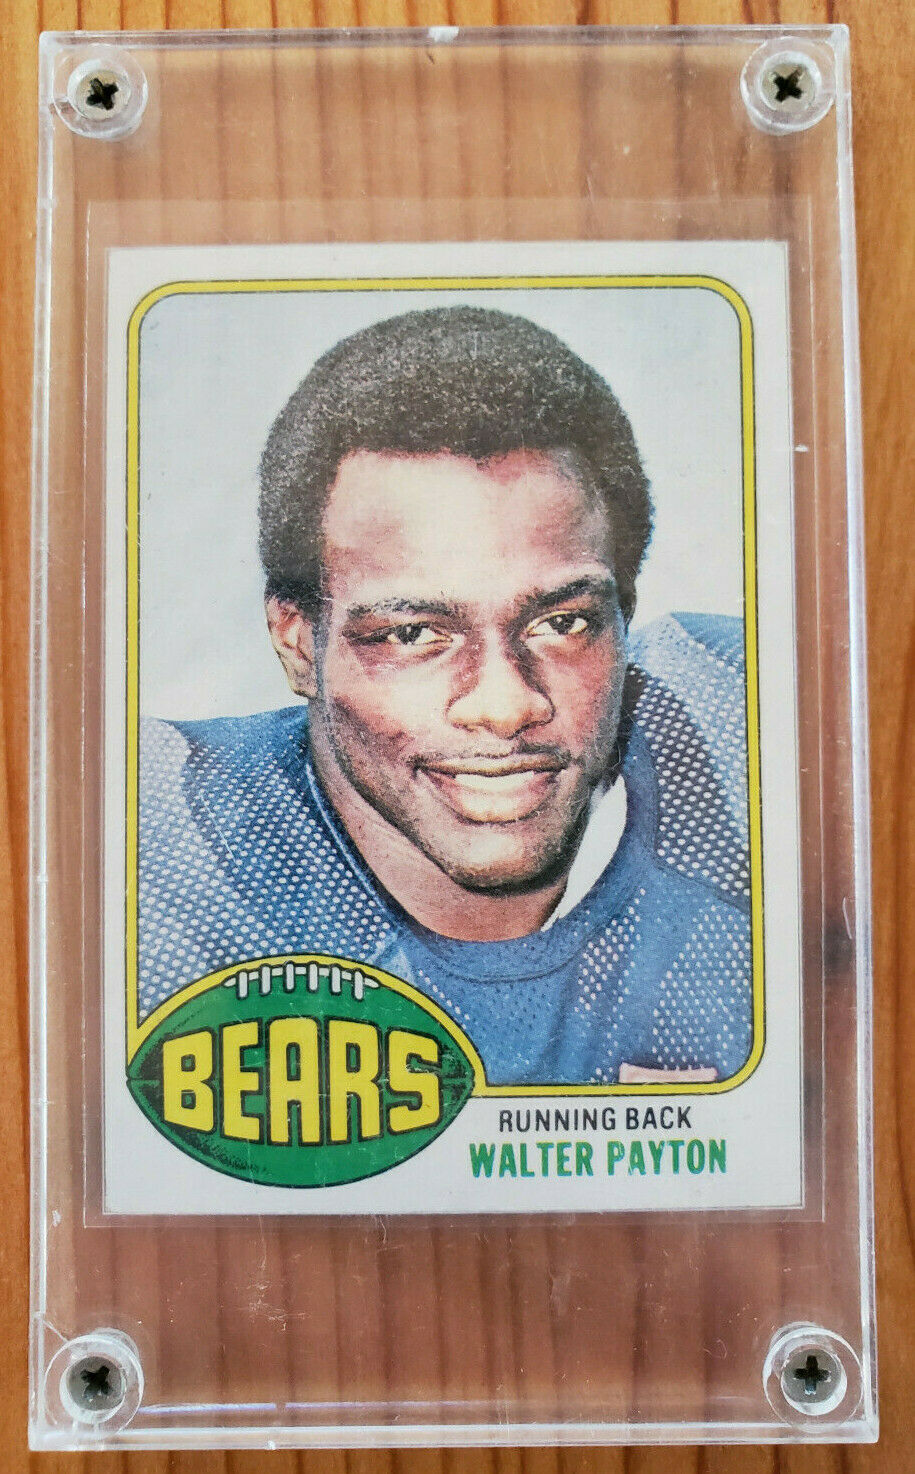 1976 Topps Walter Payton Rookie Chicago Bears 148 Football Card Excellent